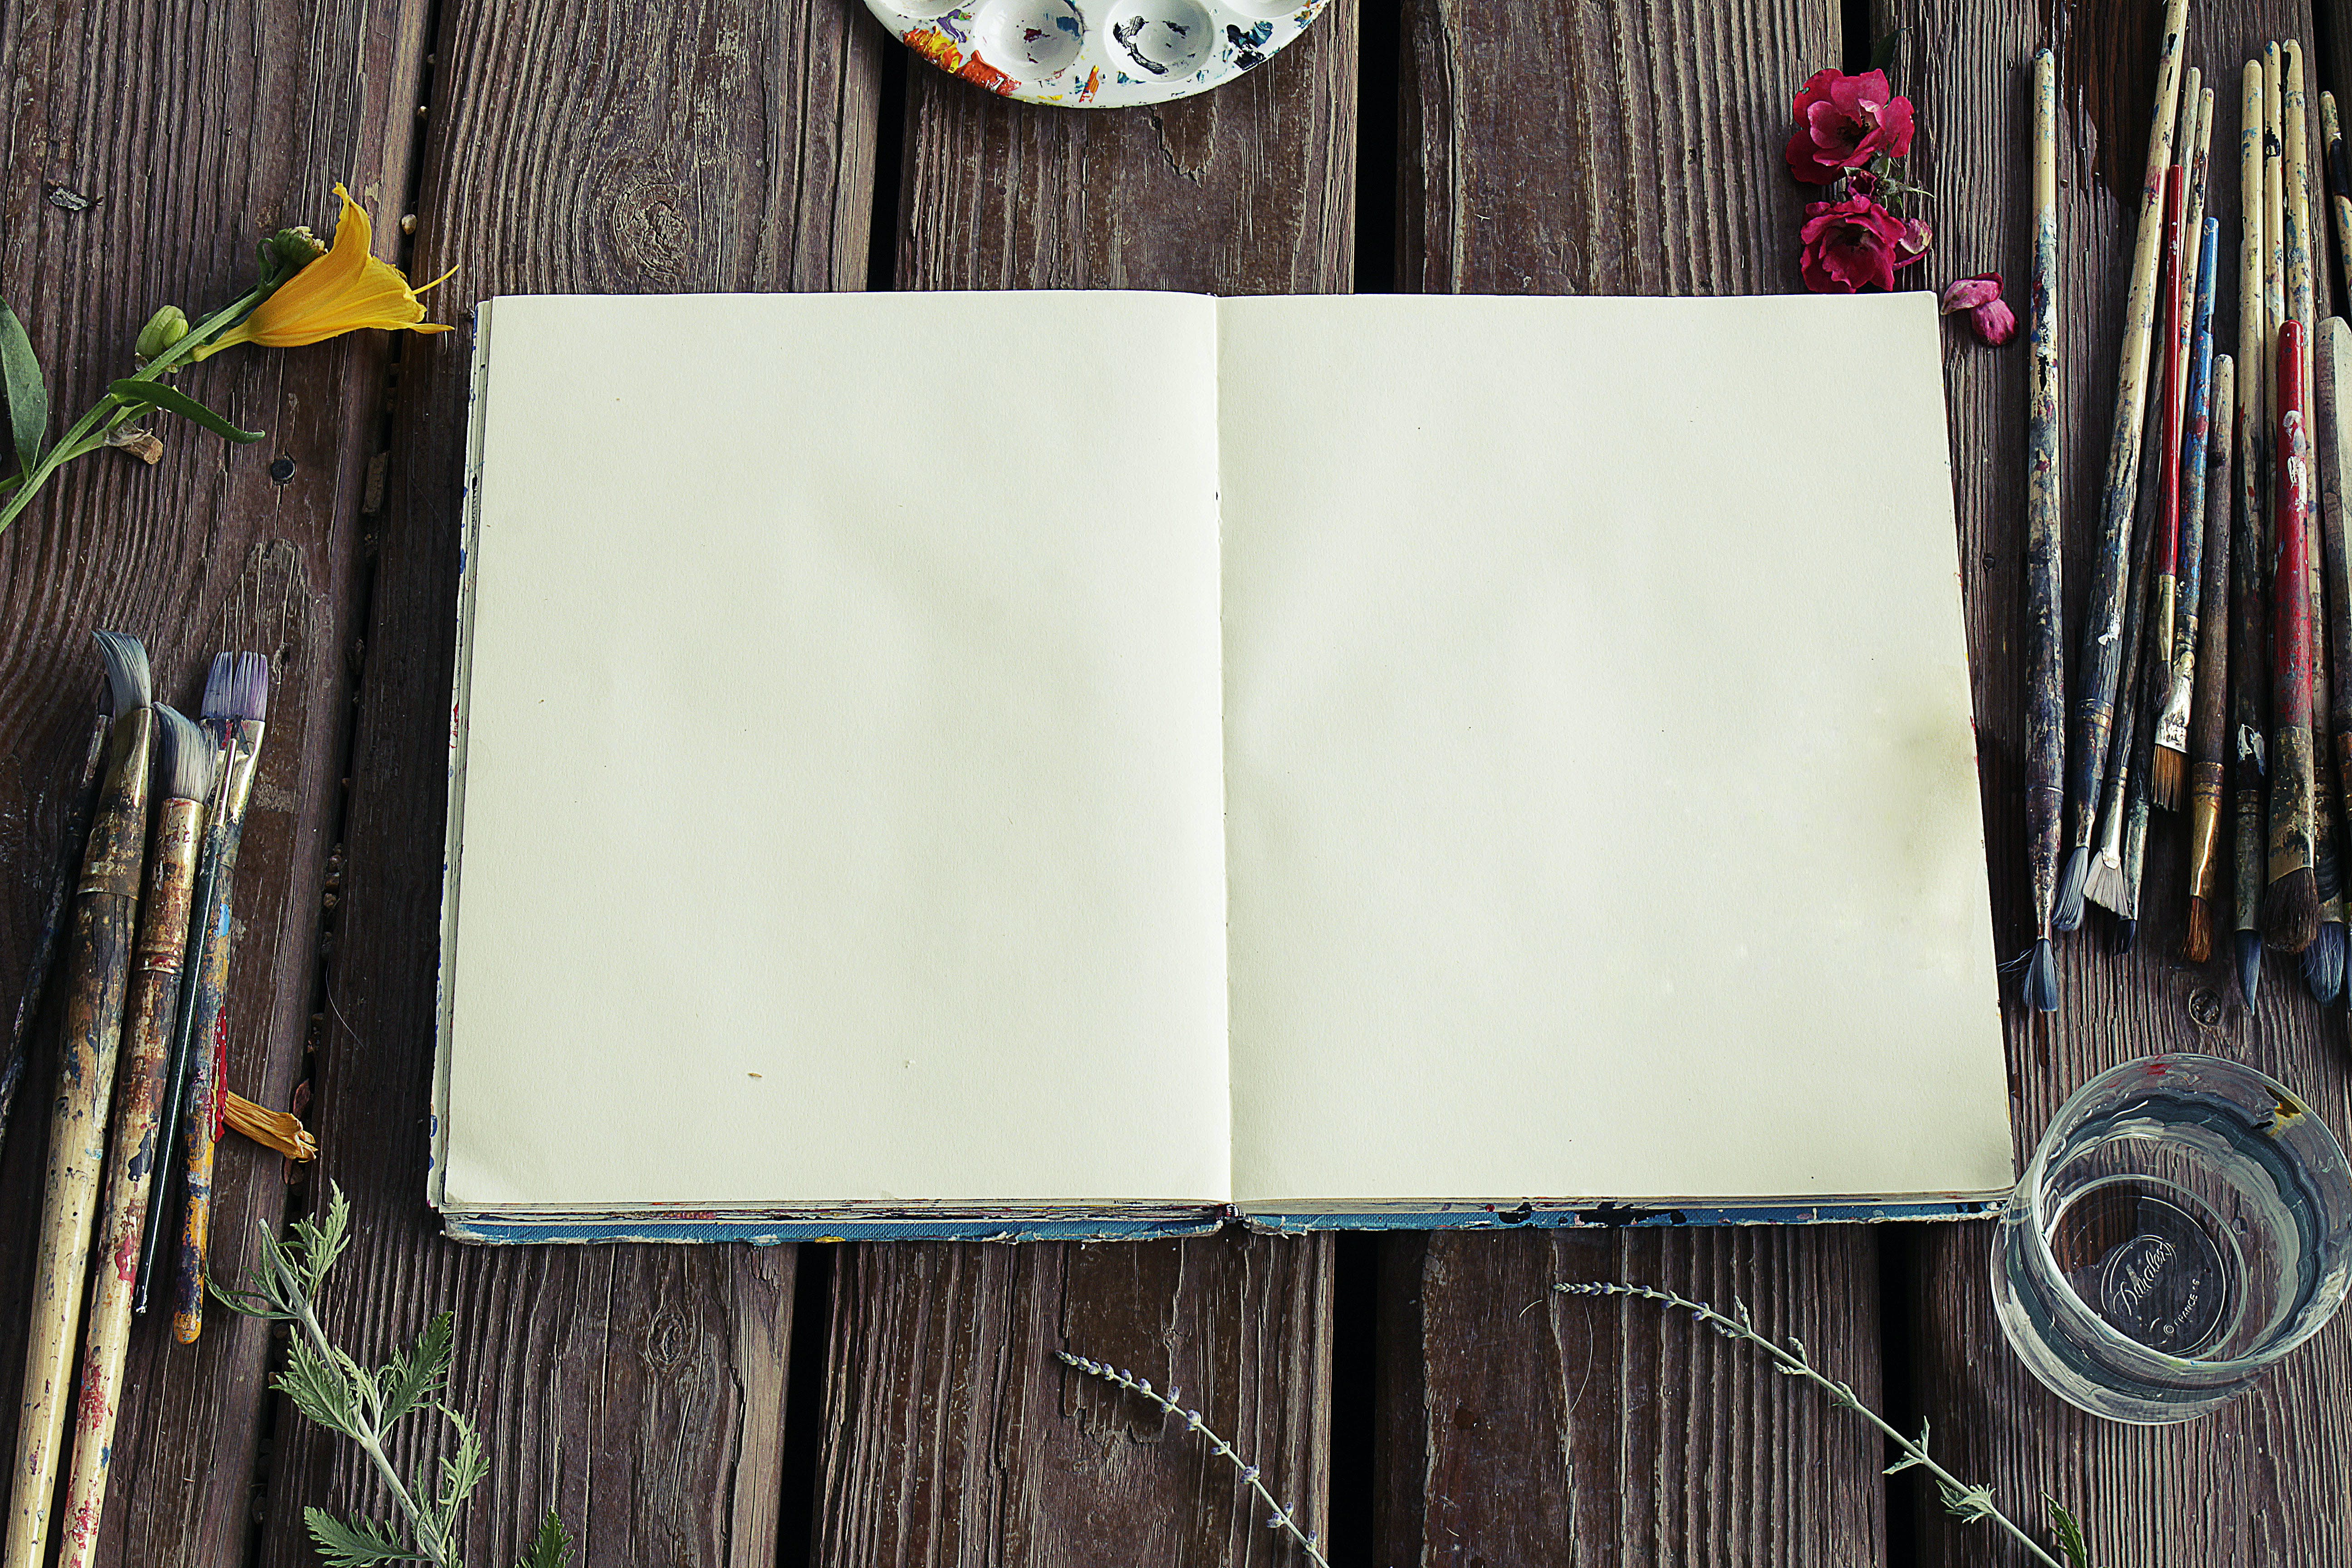 Photograph of Blank Sketchbook and Paint Brushes